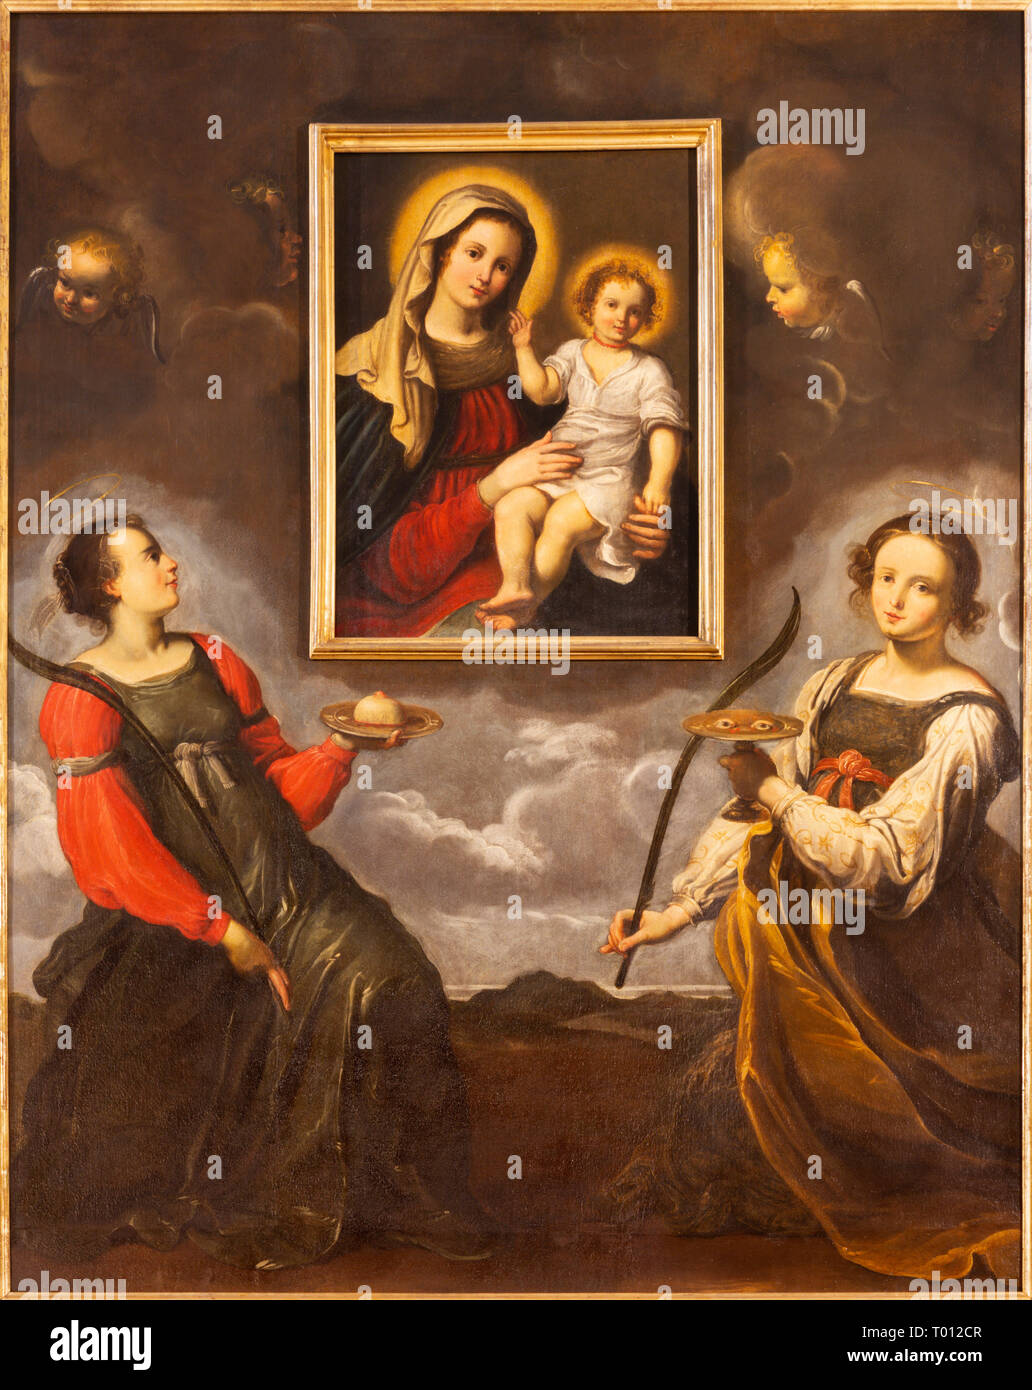 PARMA, ITALY - APRIL 17, 2018: The saints Lucy and Agata adoring the image of Madonna in church Chiesa di Santa Lucia by master of Parma school - Stock Image